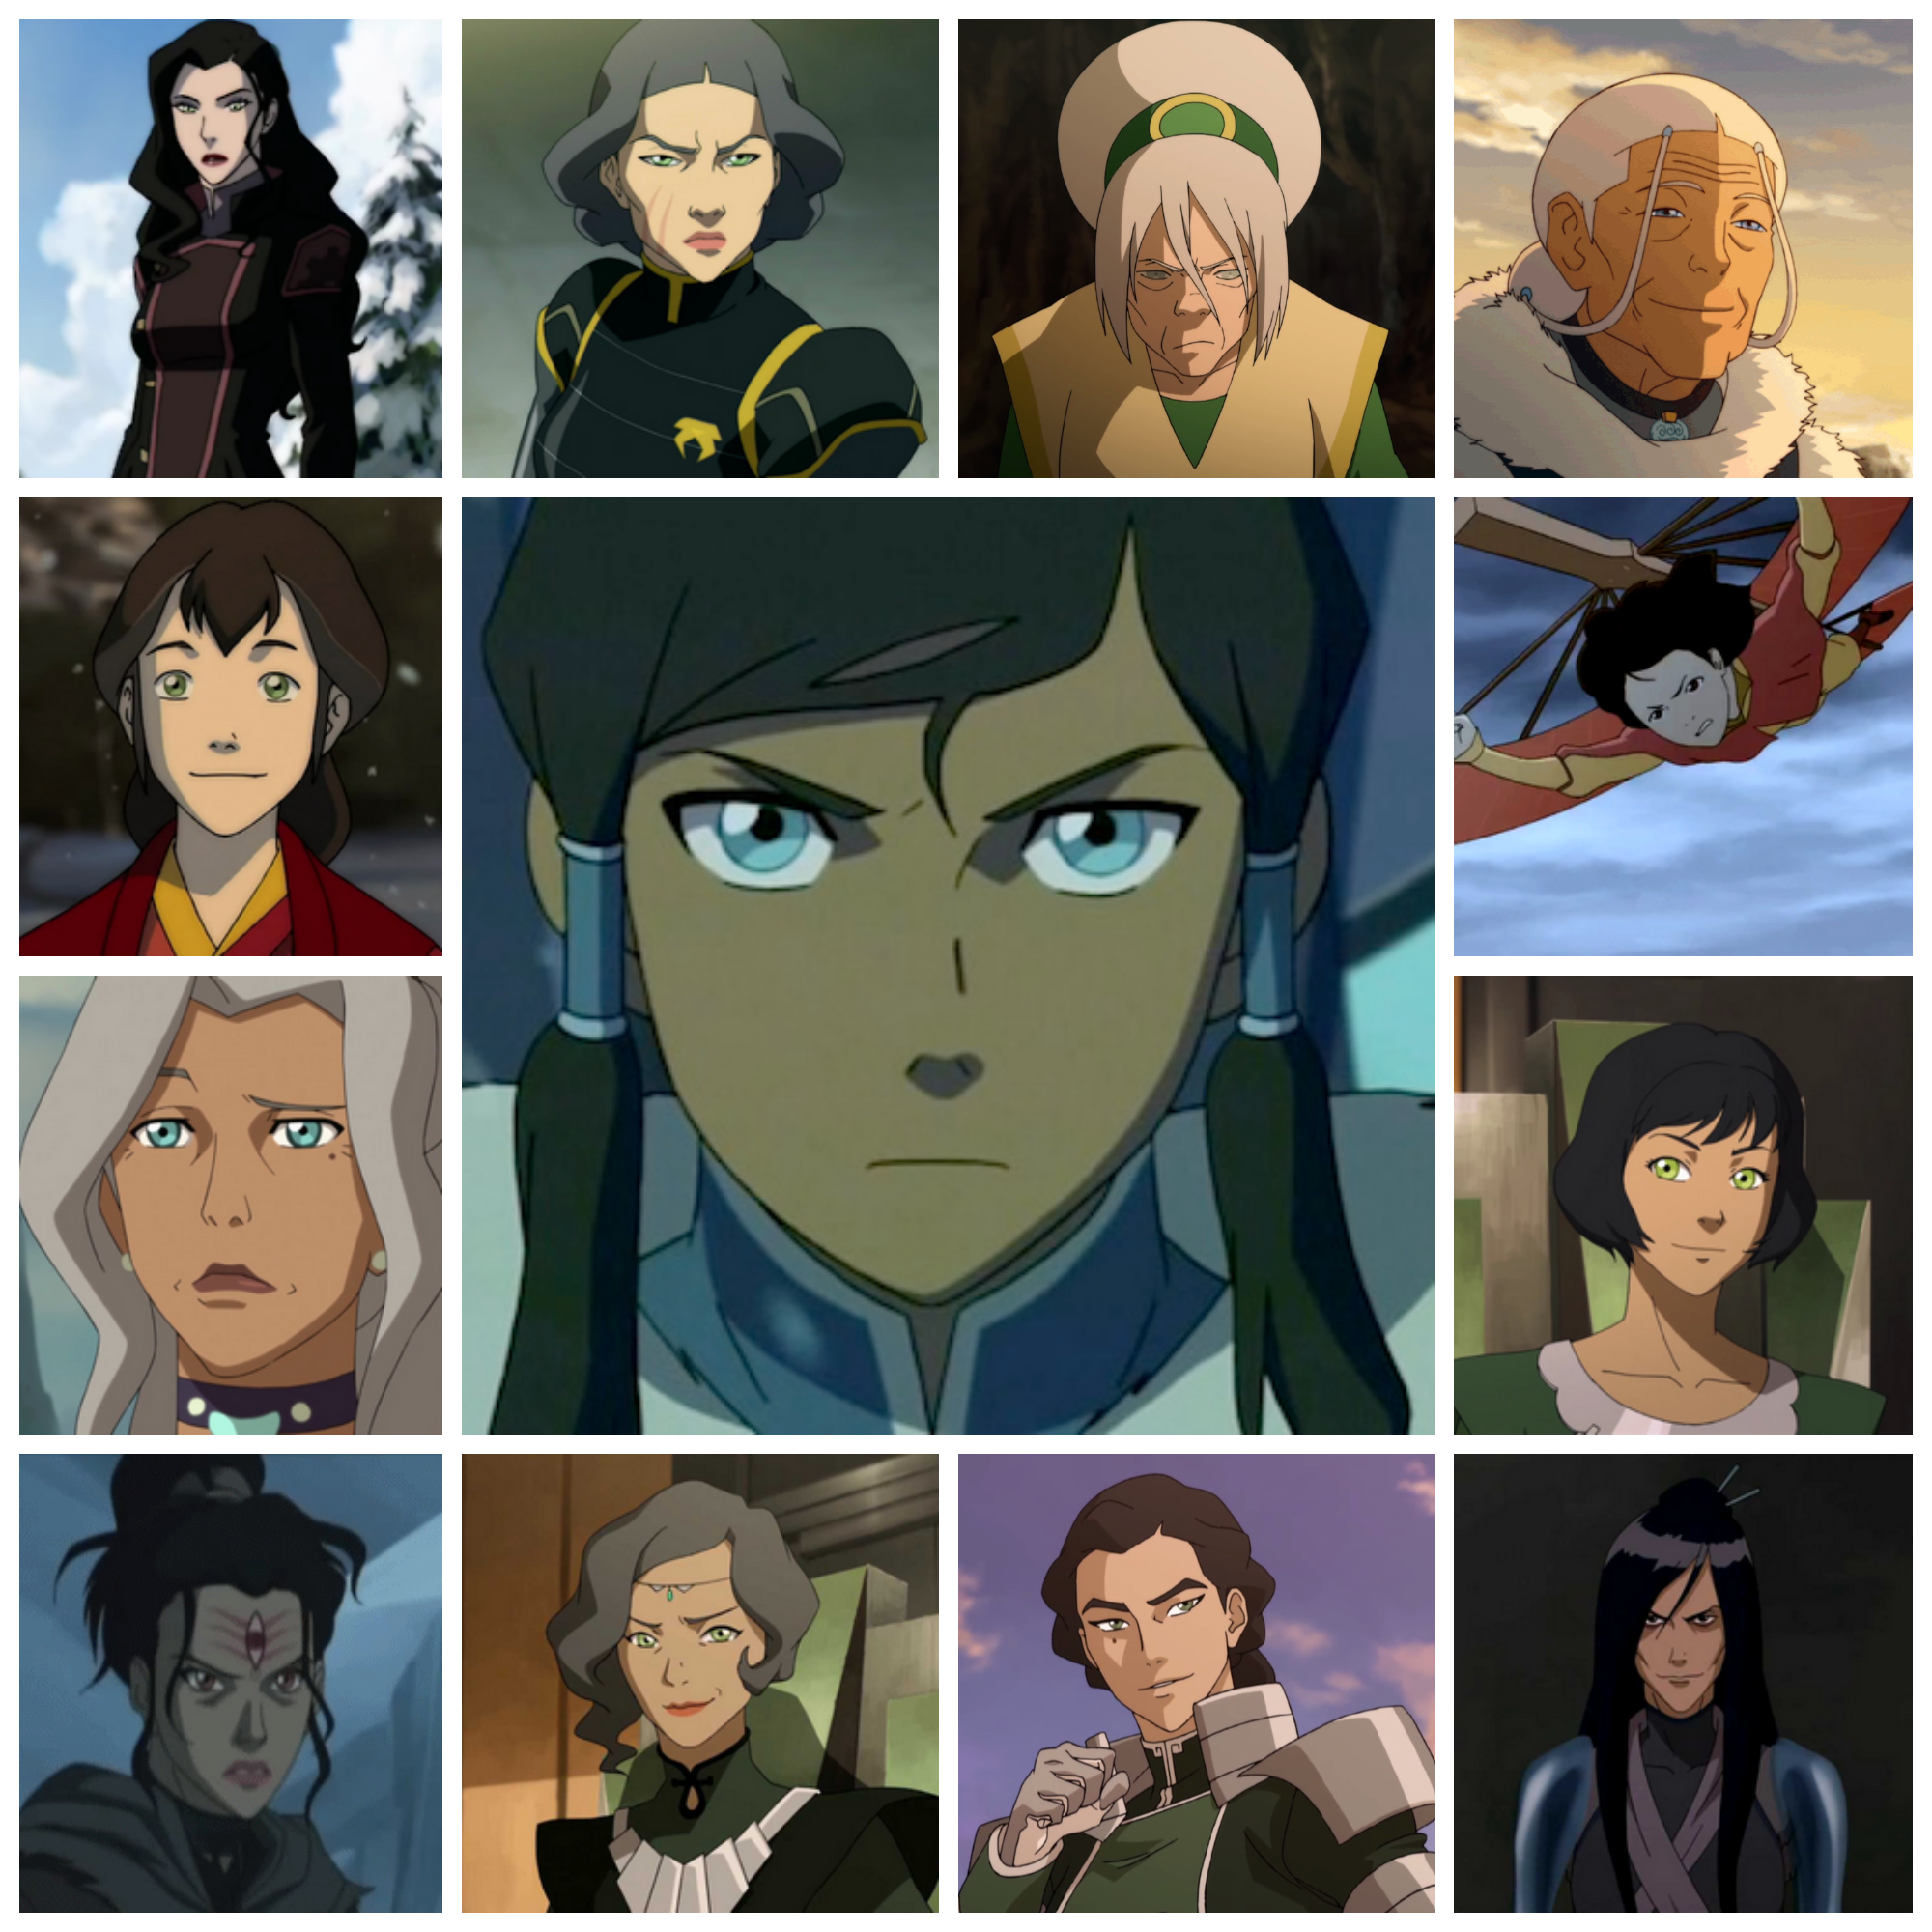 Cast Of Avatar Stars: From Facebook: A Star Wars Analogy To Help You Understand